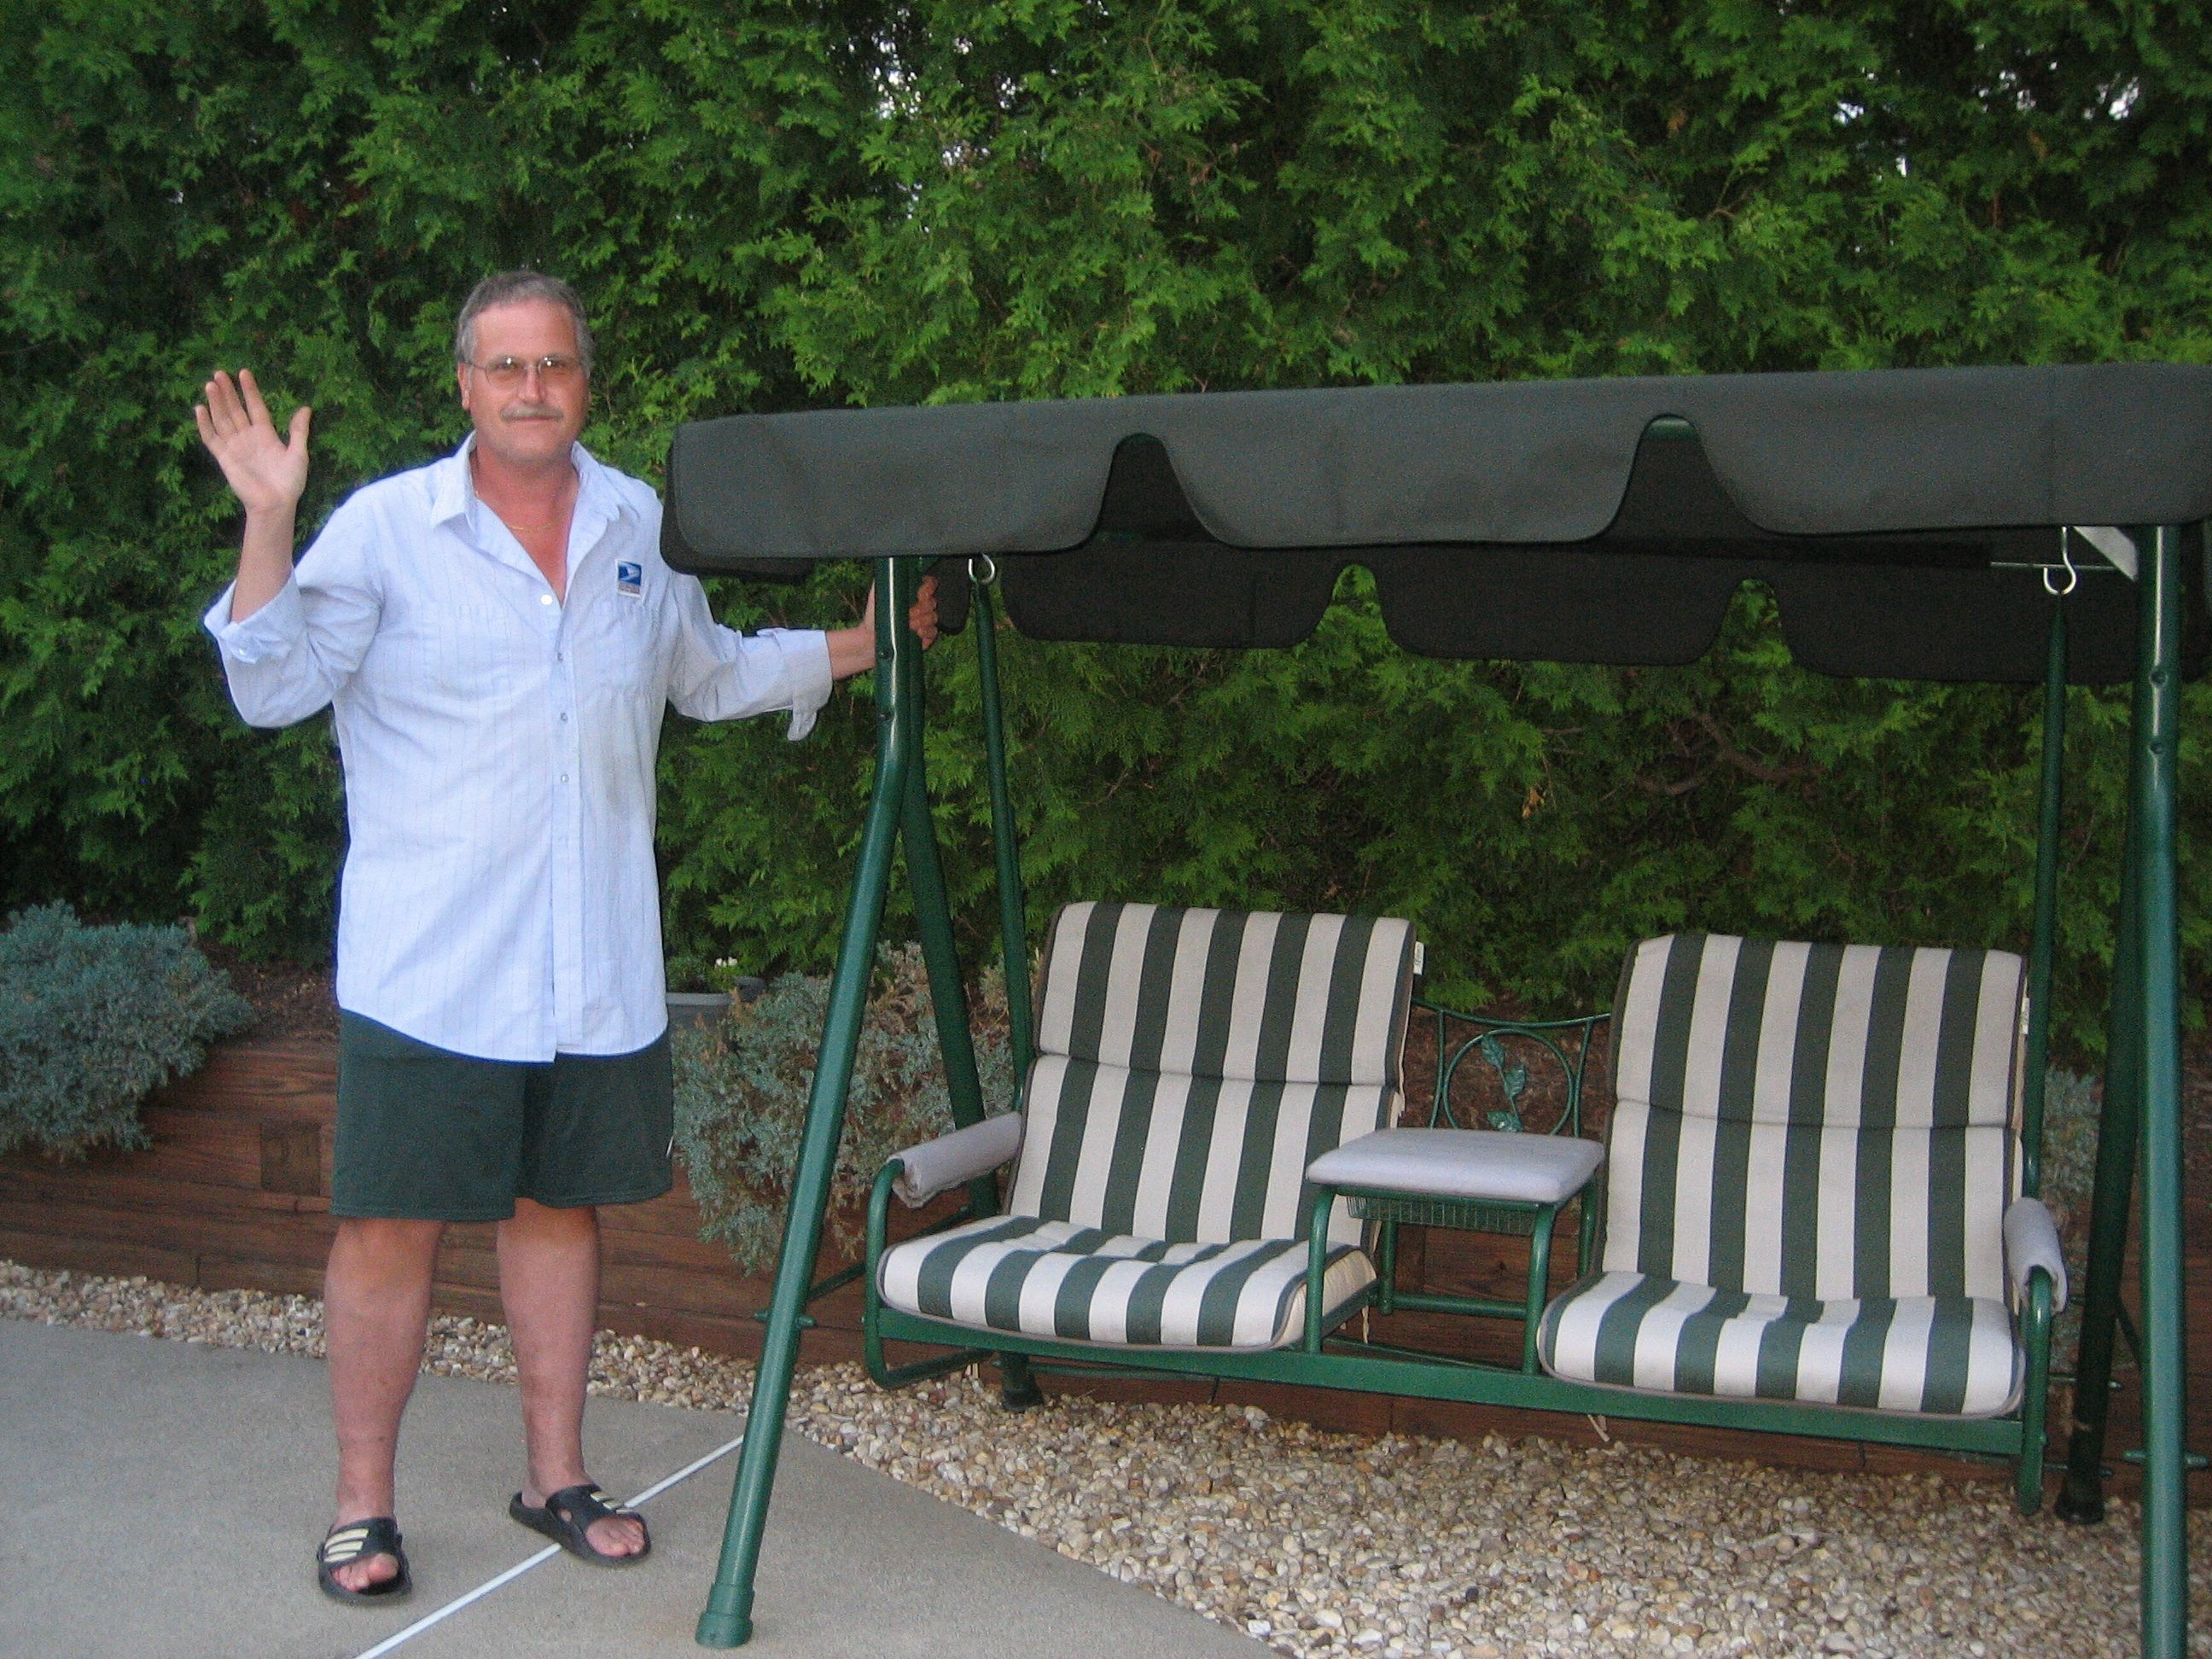 Happy Customer with replacement canopy for Walmart 2 seat